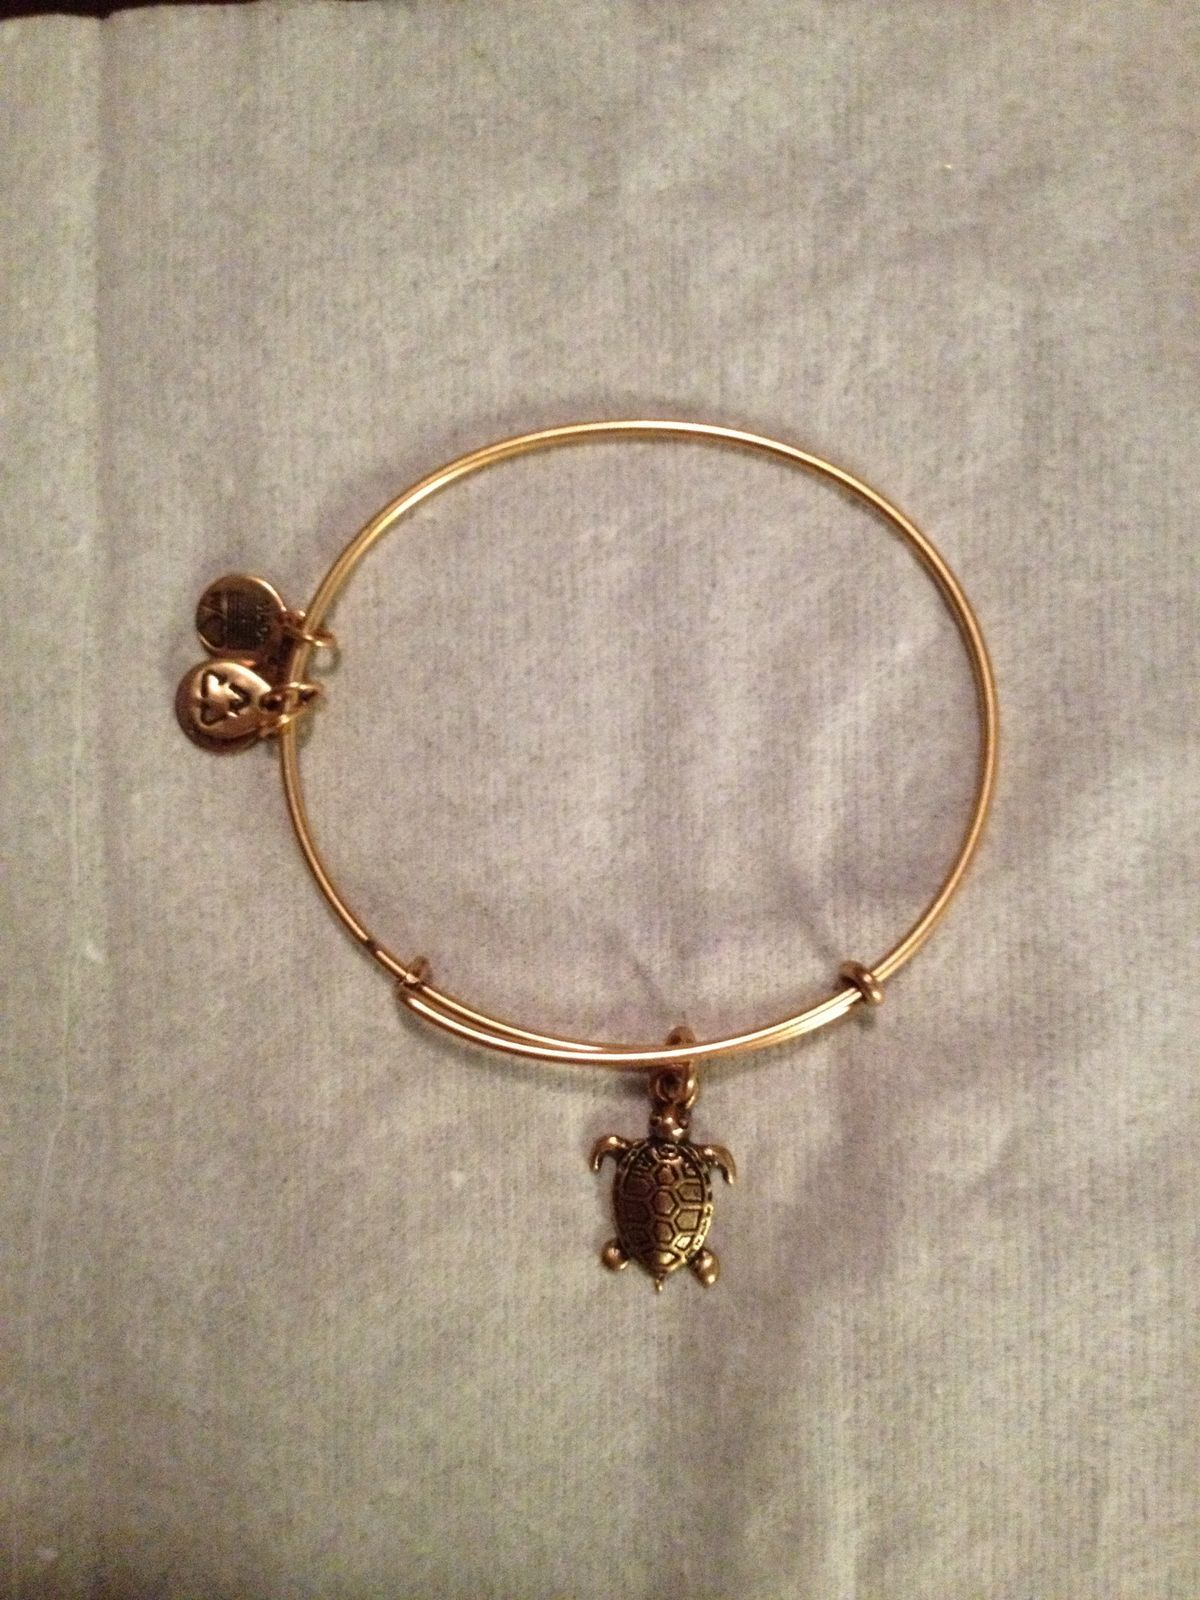 9bd0ba8c168db5ed0c368b999a0f127f Jpg 1 200 1 600 Pixels Alex And Ani Bracelets Beautiful Jewelry Pandora Bracelets